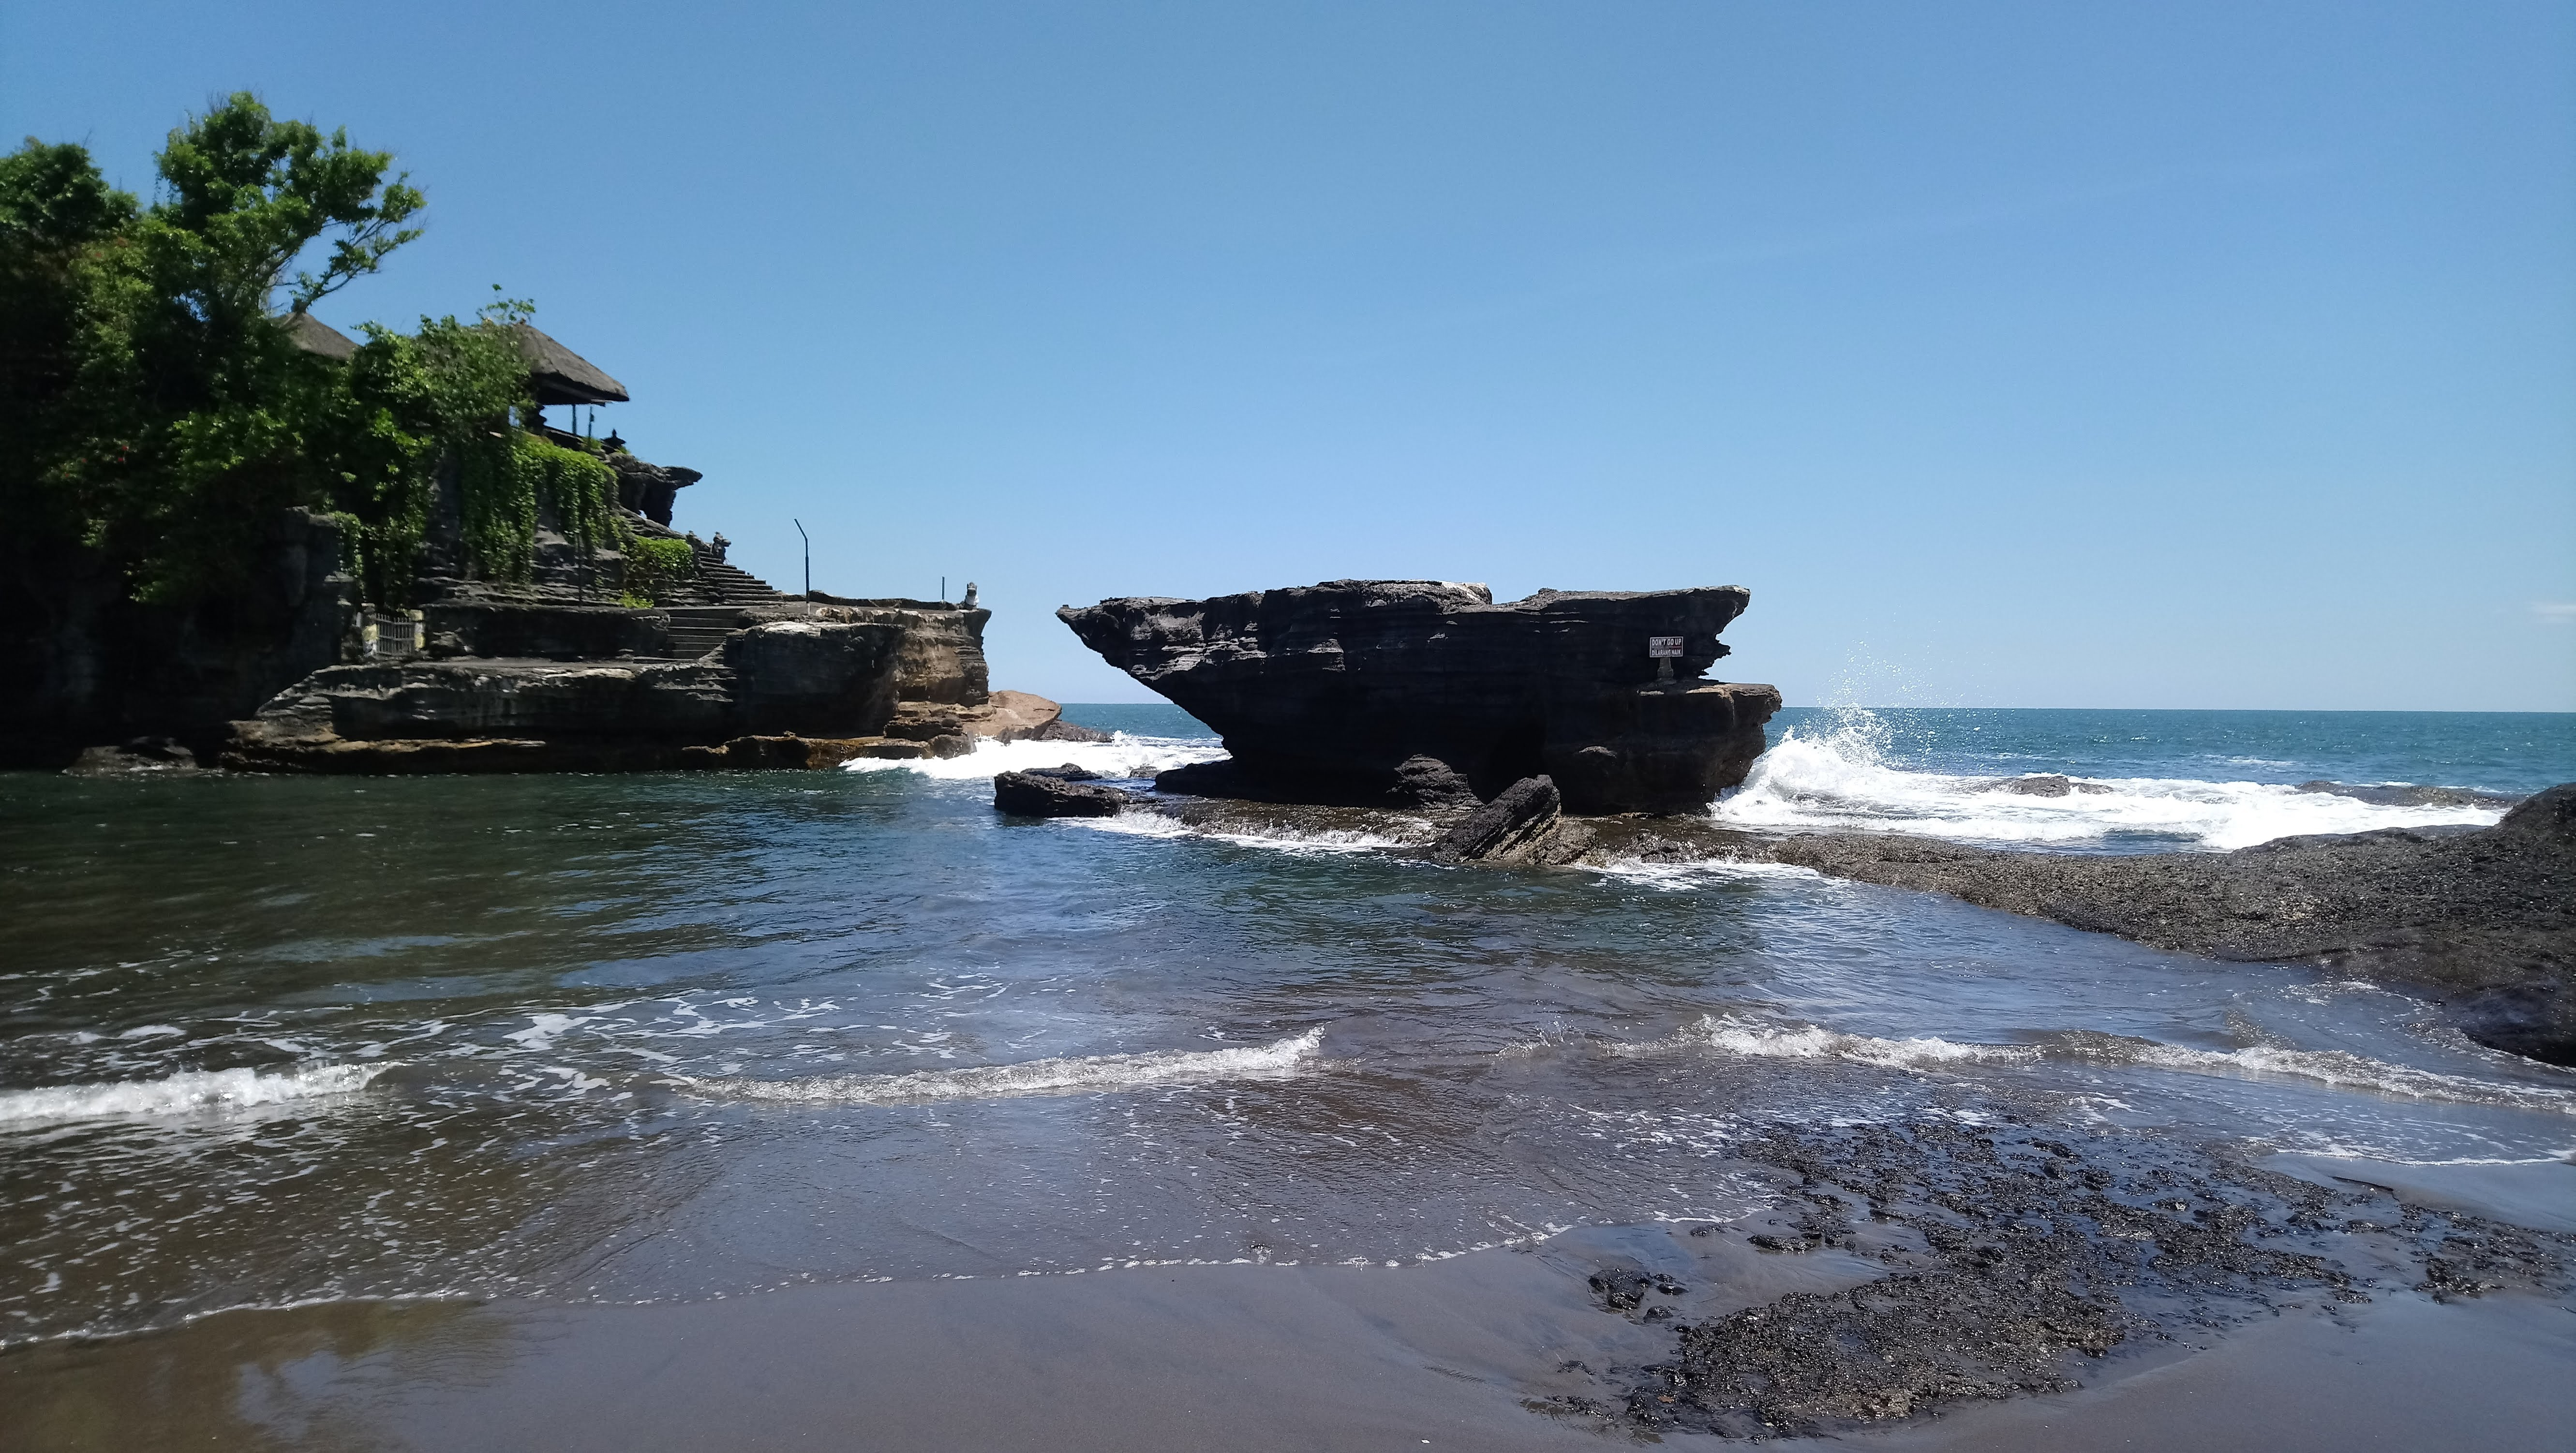 File:Tanah Lot.jpg